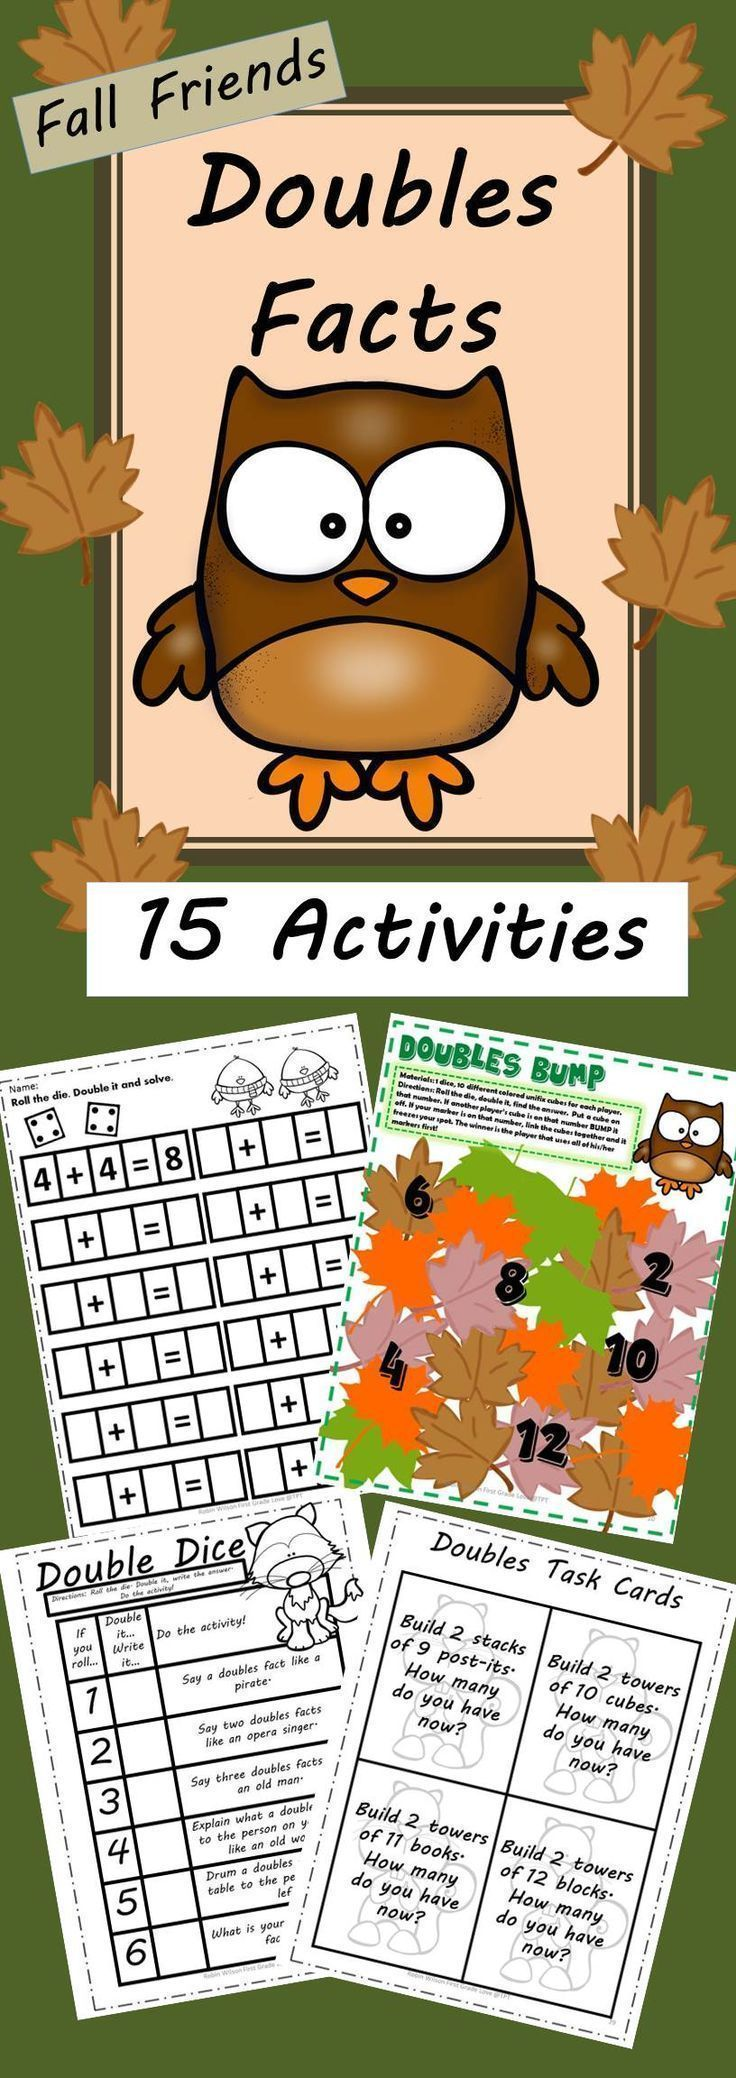 Doubles Facts Math Centers is perfect for your stations while teaching doubles facts. There are 15 math activities included to support your teaching the doubles facts!